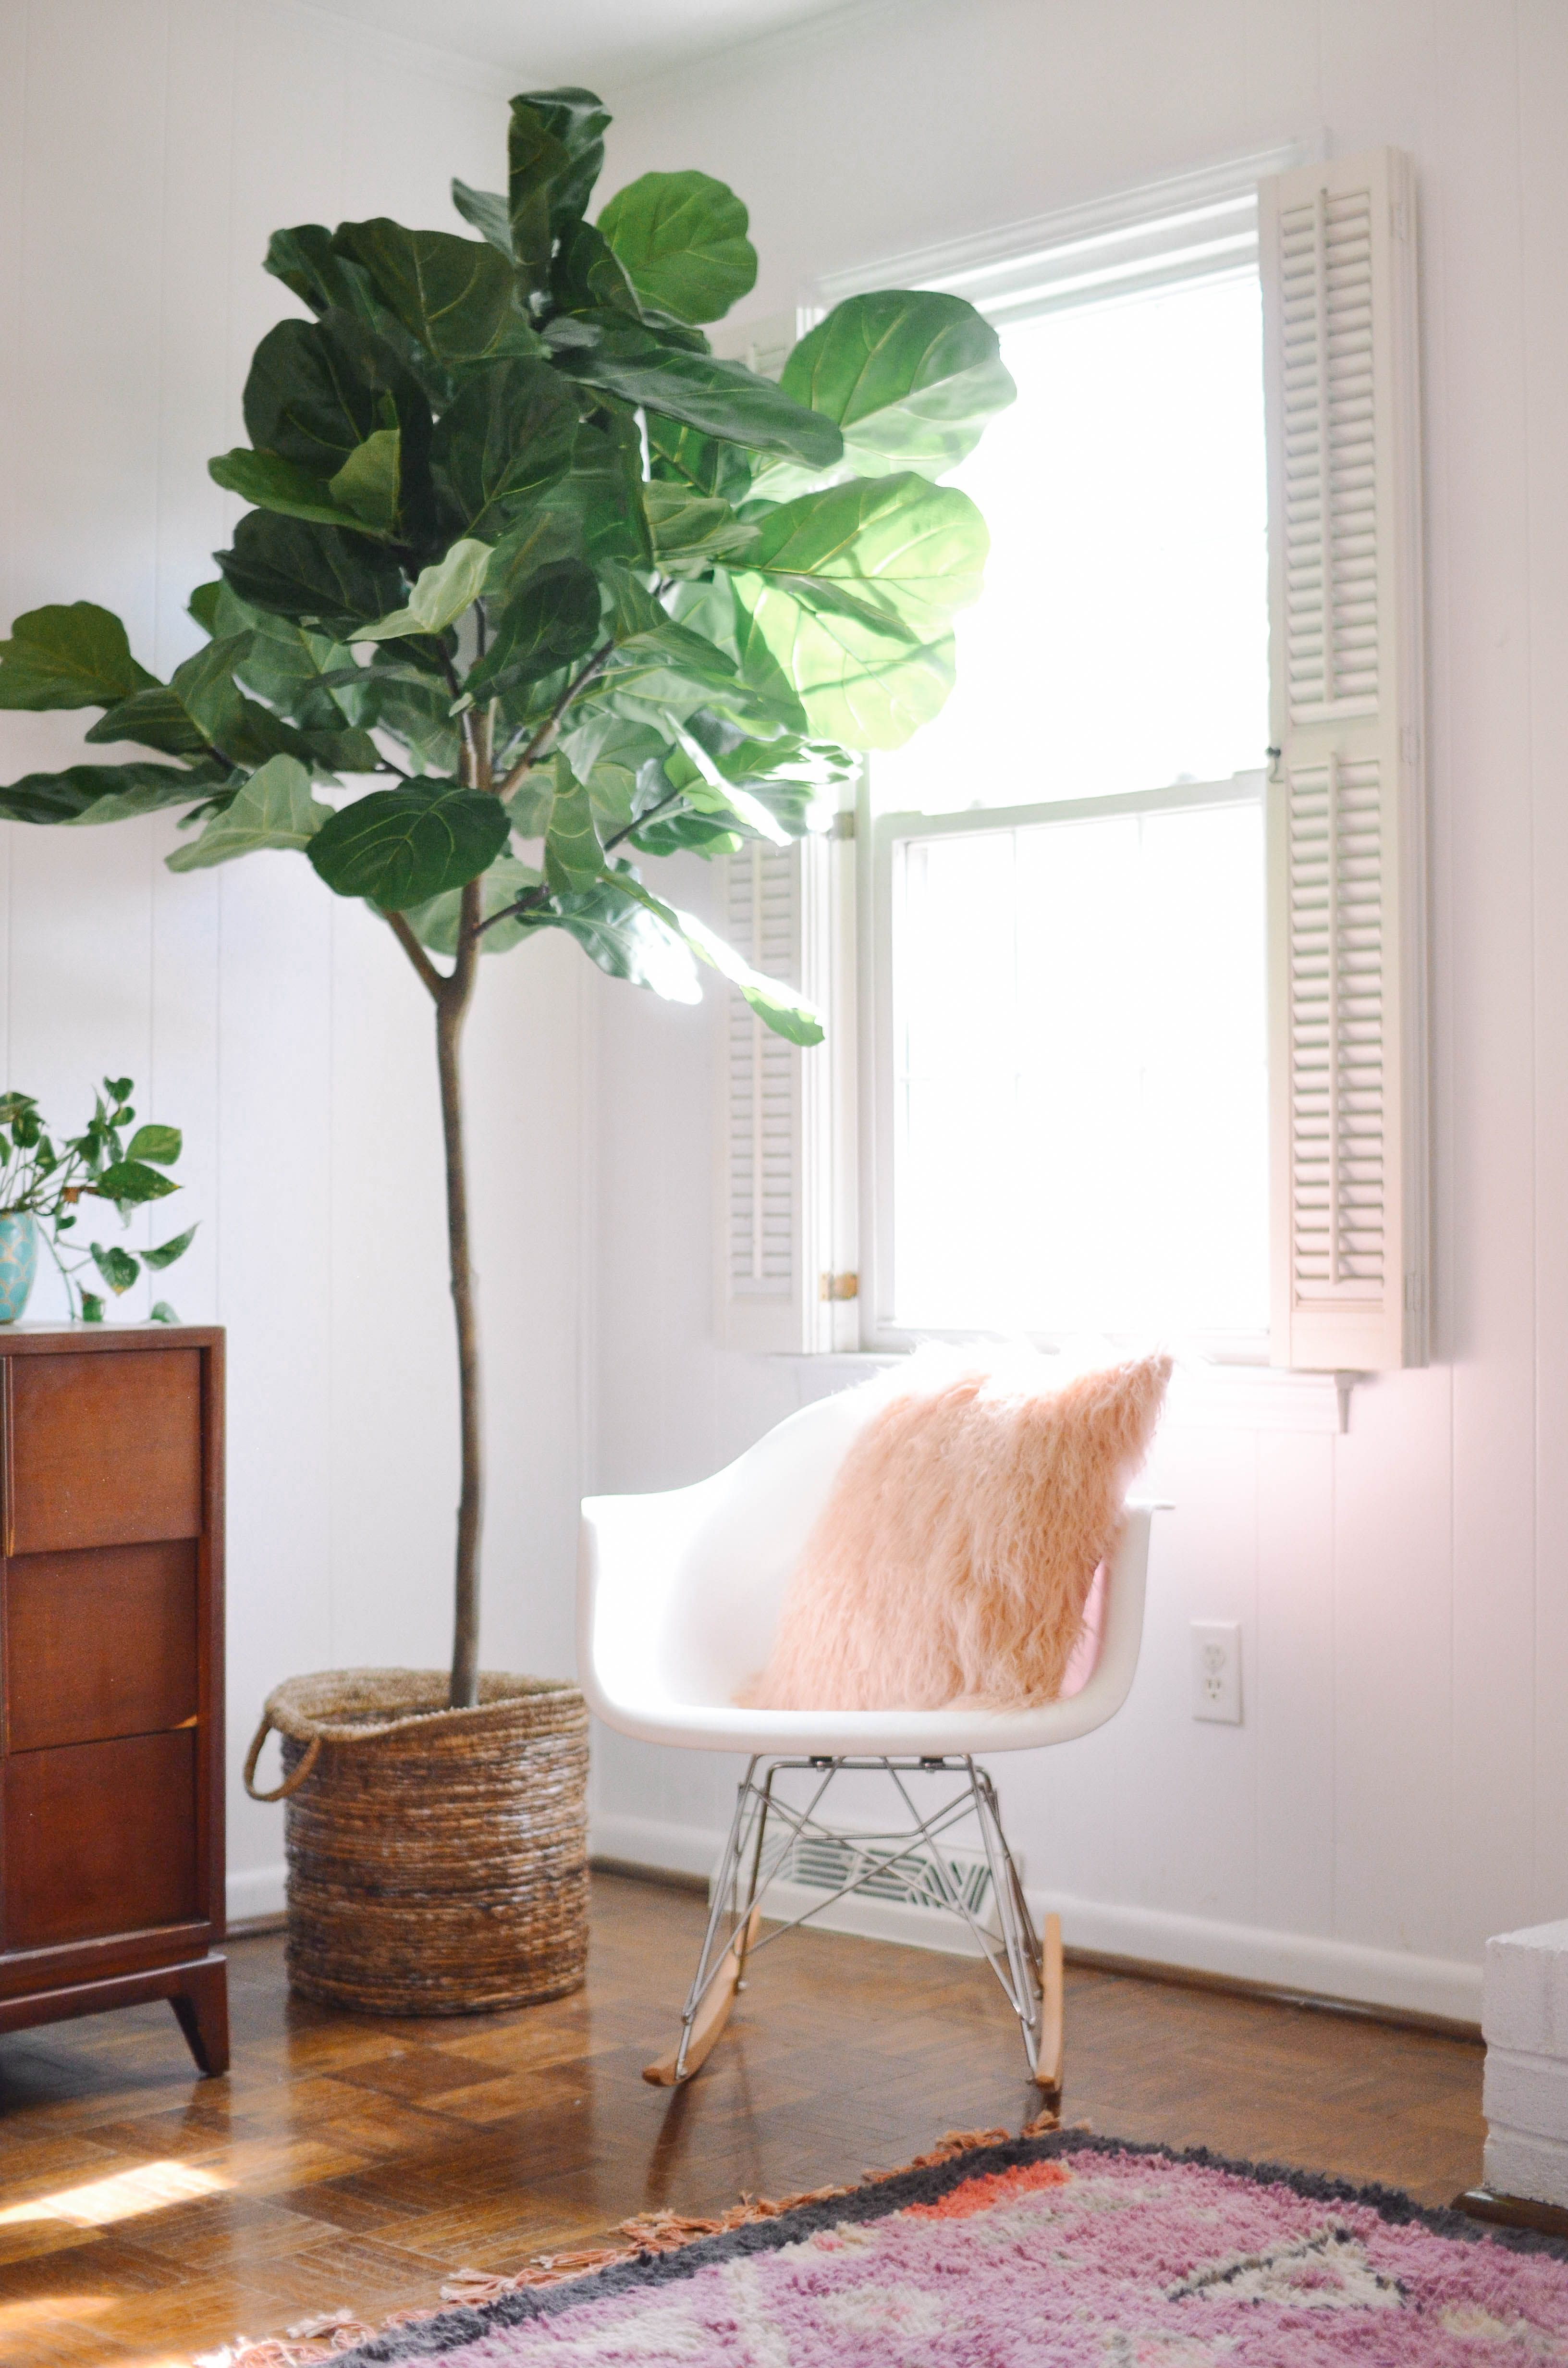 Artificial Decorative Plants And Trees Plant Decor Indoor Artificial Indoor Plants Indoor Plants